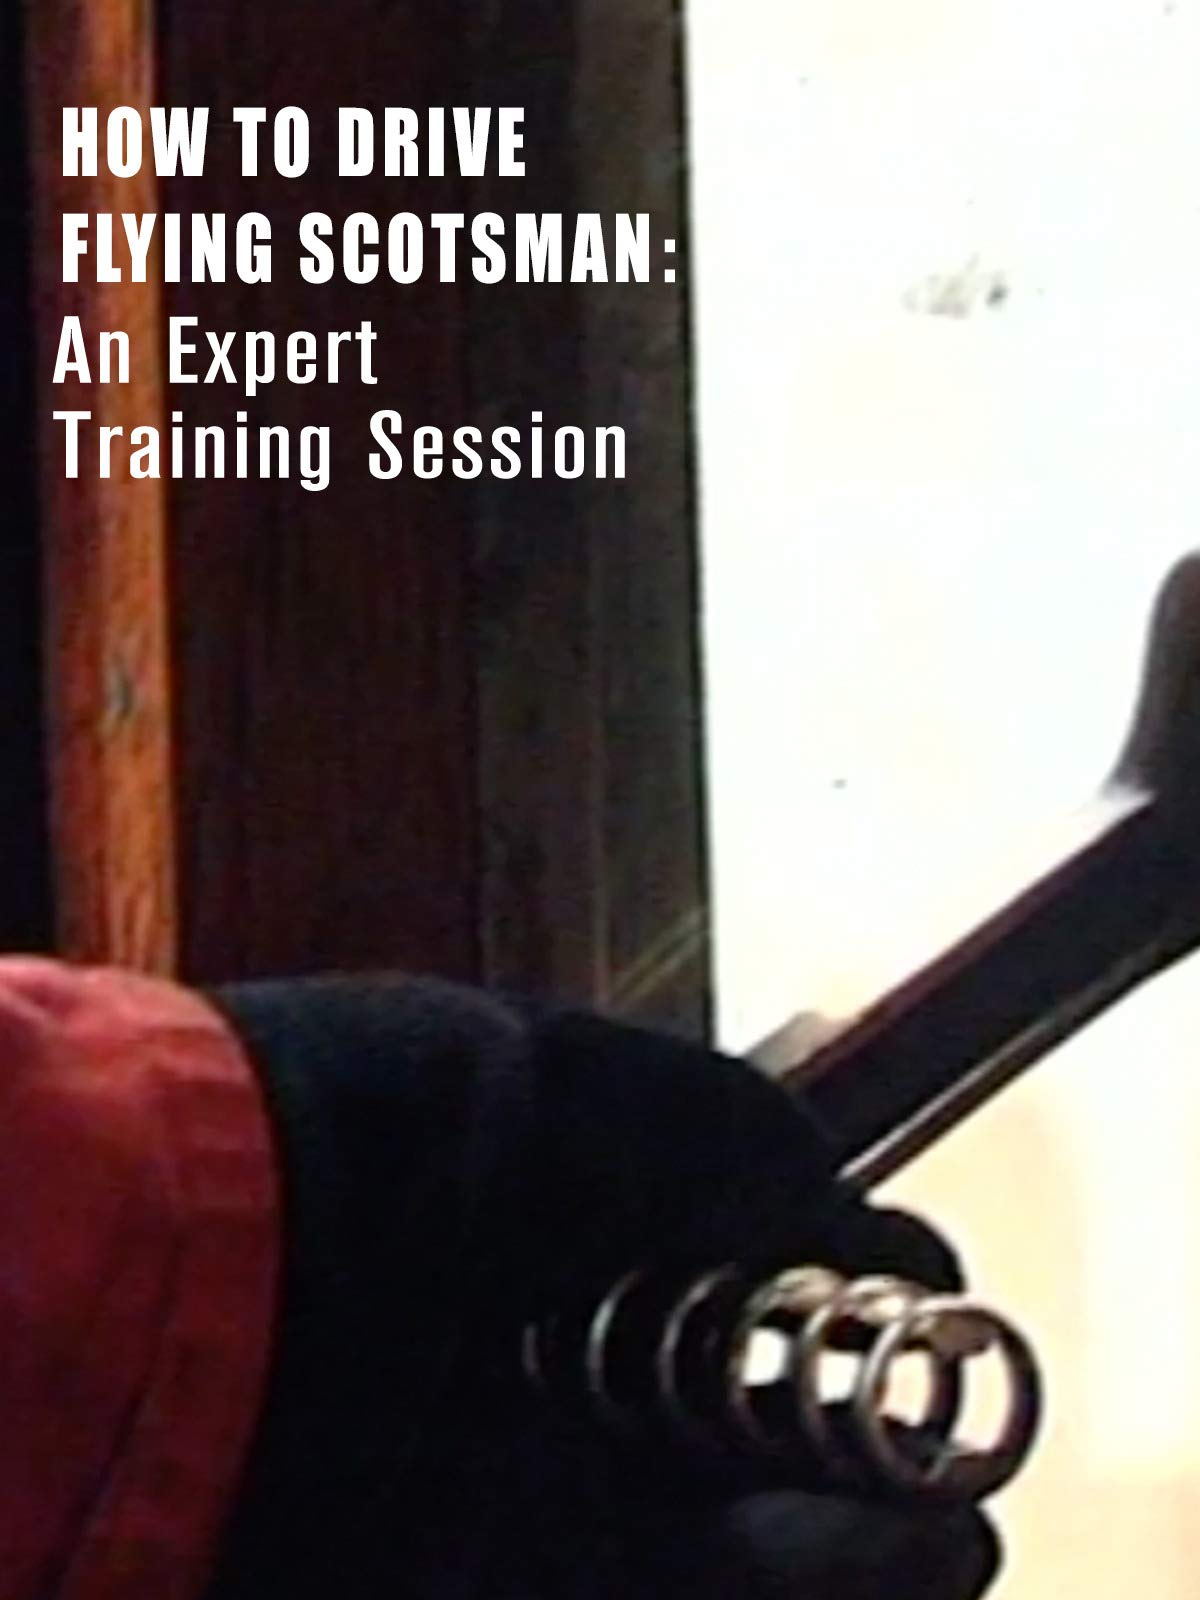 How to Drive the Flying Scotsman: An Expert Training Session on Amazon Prime Video UK